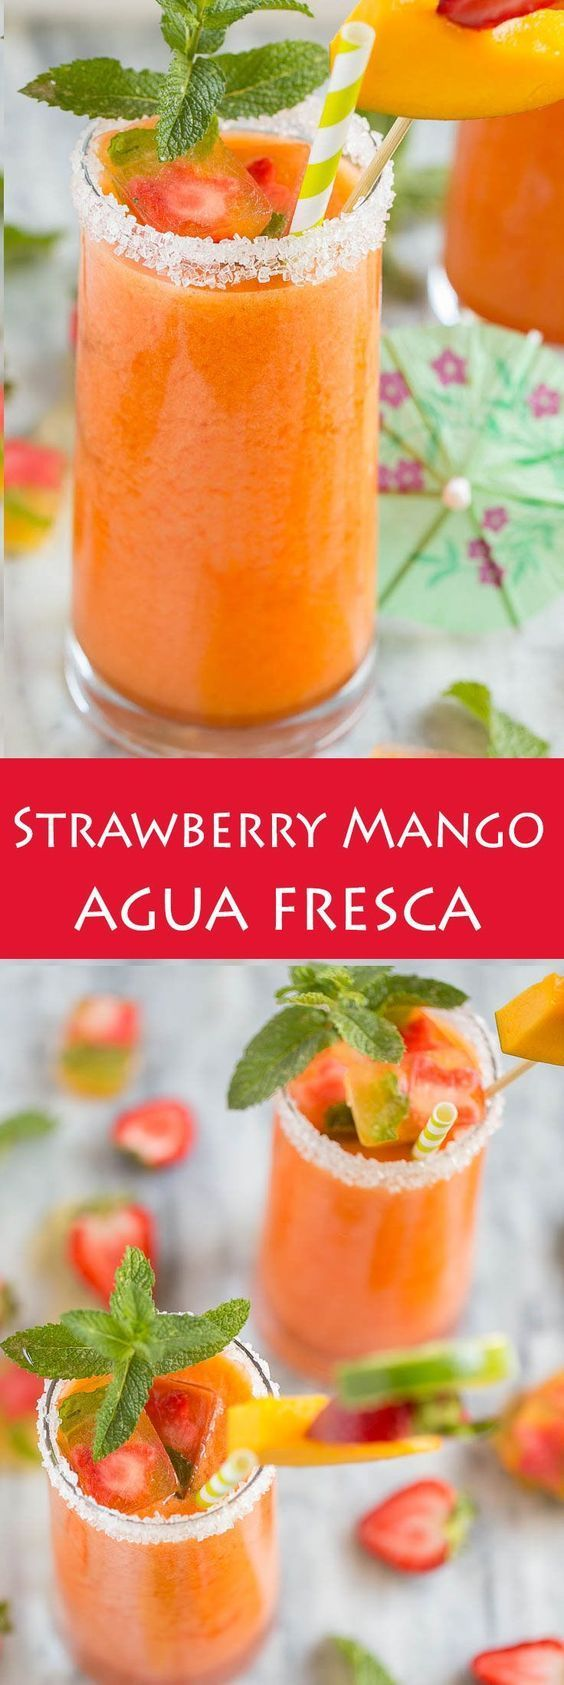 Light Summer Cocktail Recipes: Strawberry Mango Agua Fresca Is The Perfect Light And